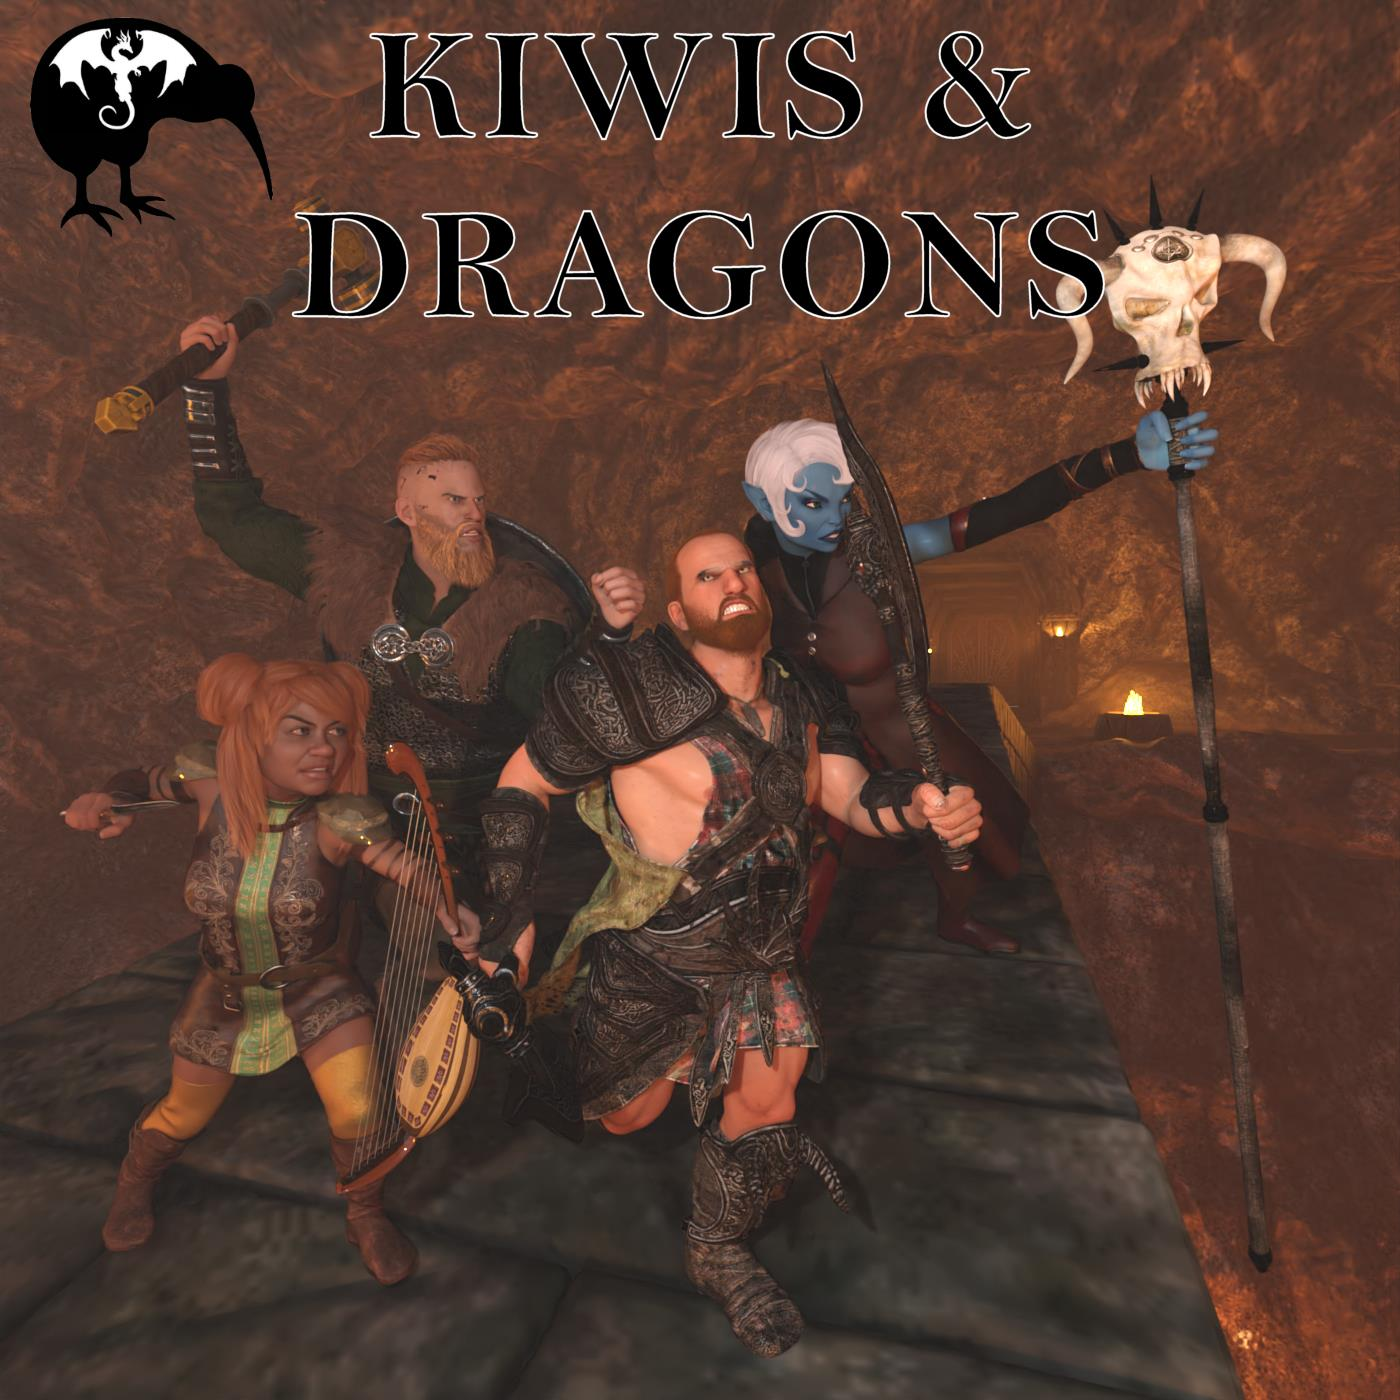 Kiwis and Dragons-26-04-2021 - Episode 1 - It's a trap